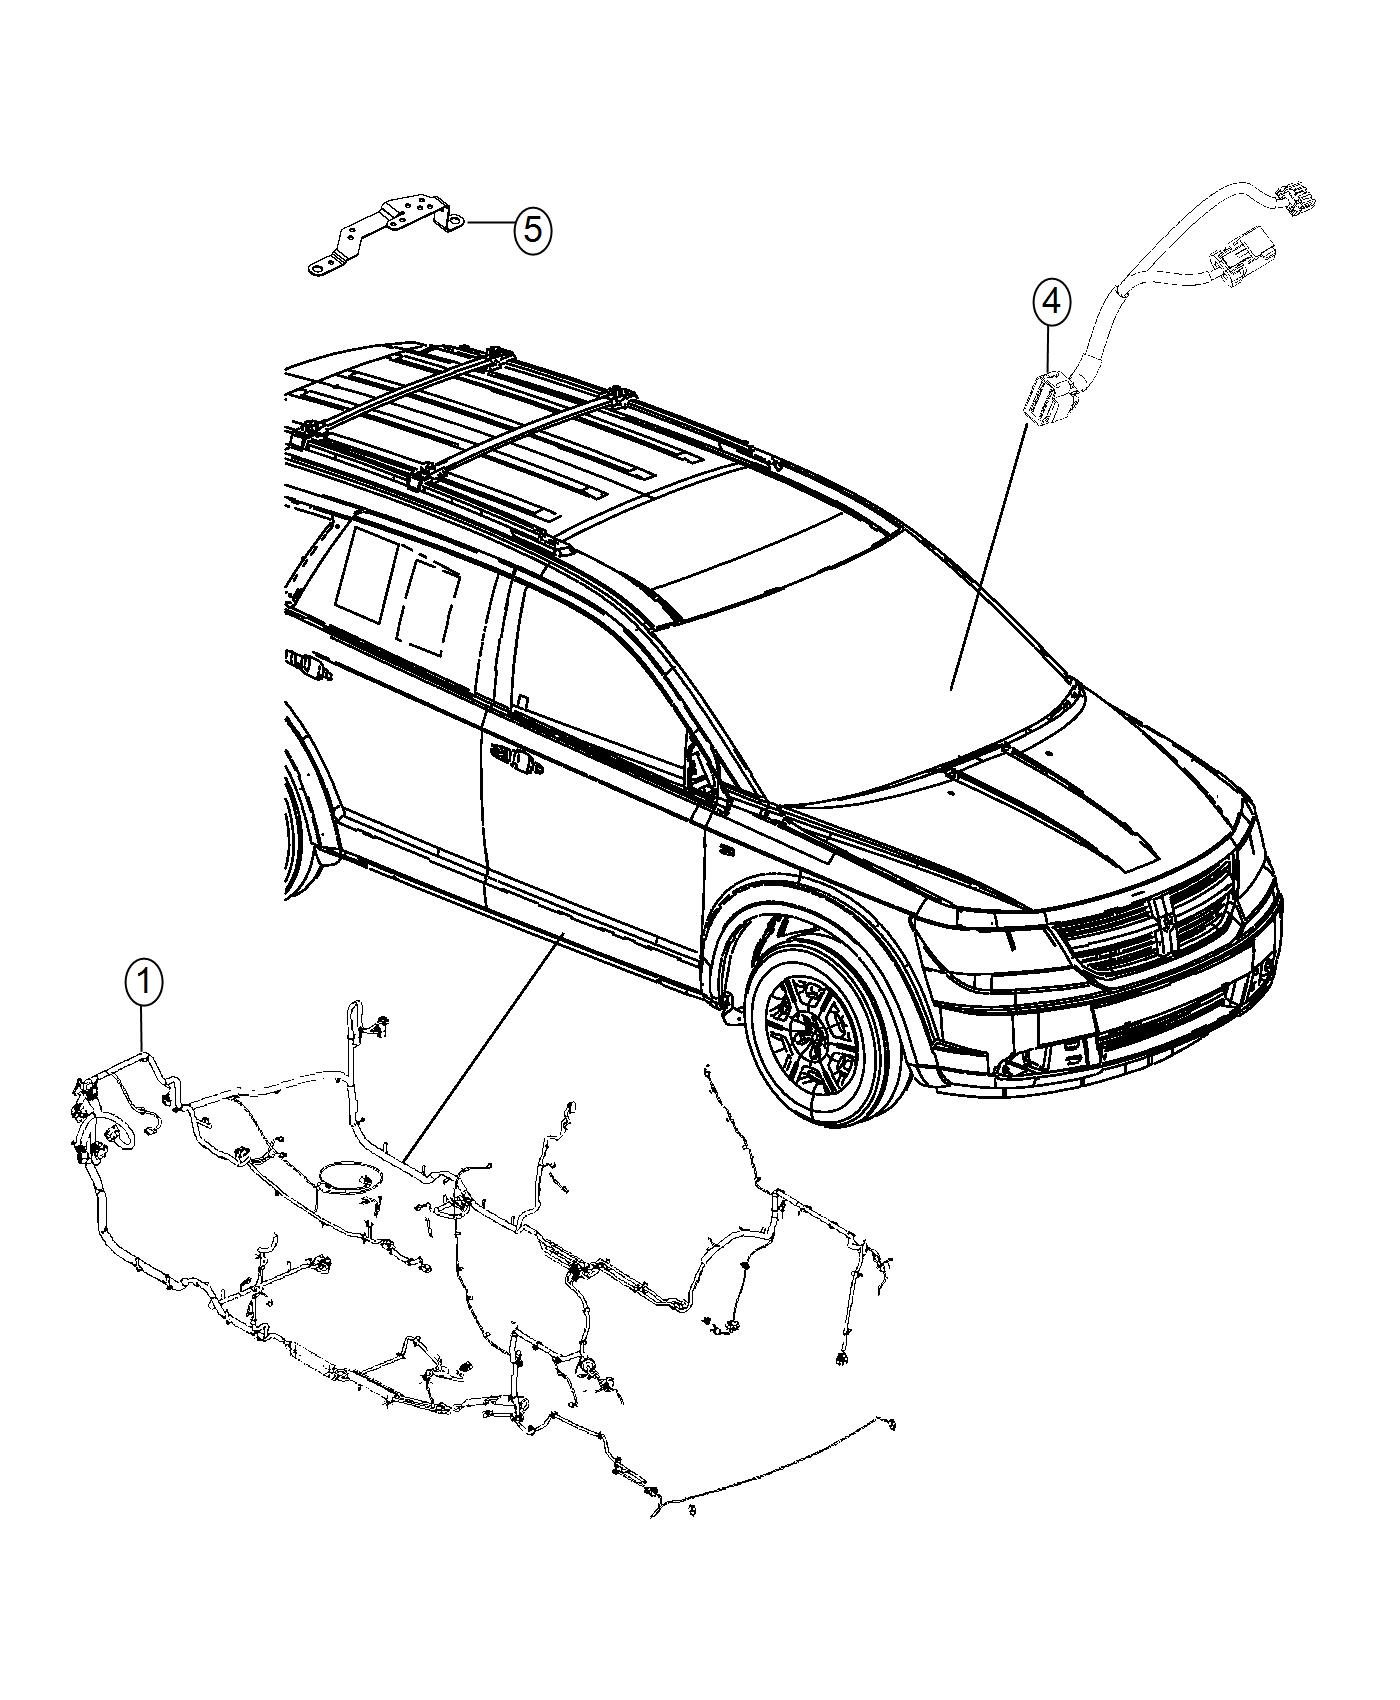 2015 dodge journey wiring  mexico  unified body   jkv